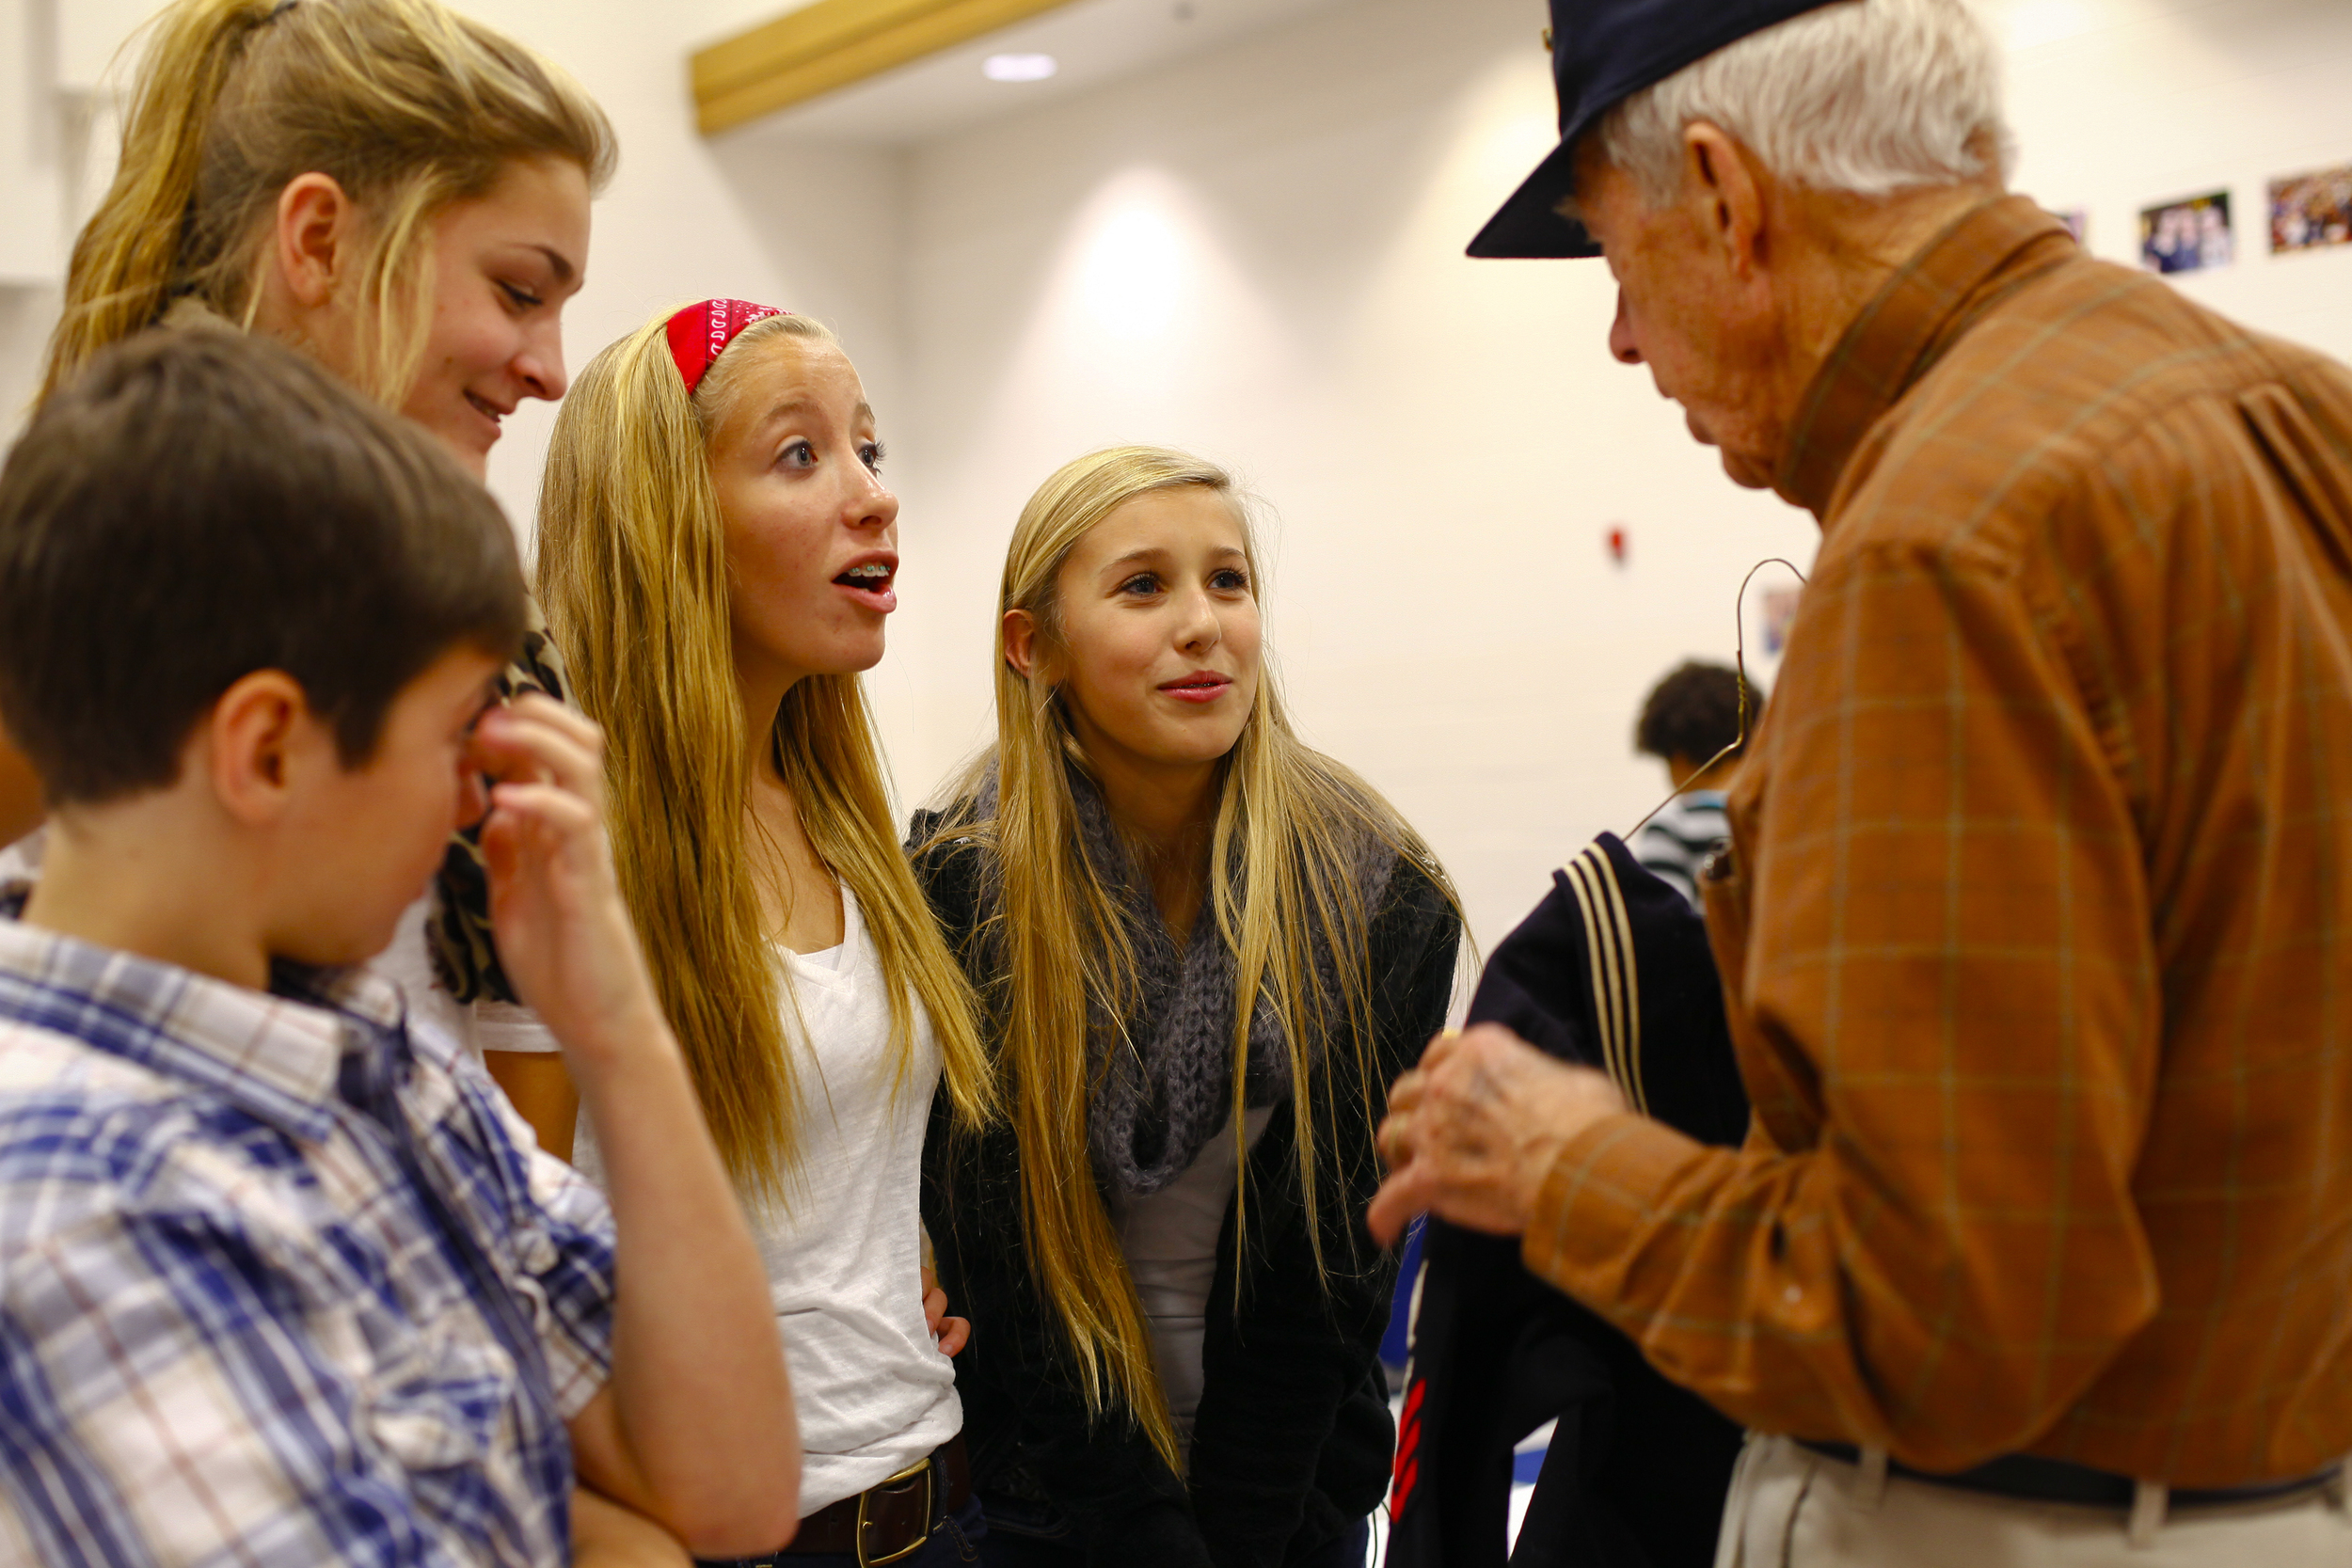 Eighth grade ambassadors Tristan Henson,left, Madelyn Burgess, Lauren Hardesy, and Ashley Spillman speaks with Navy retiree Orville Bryant about his uniform.